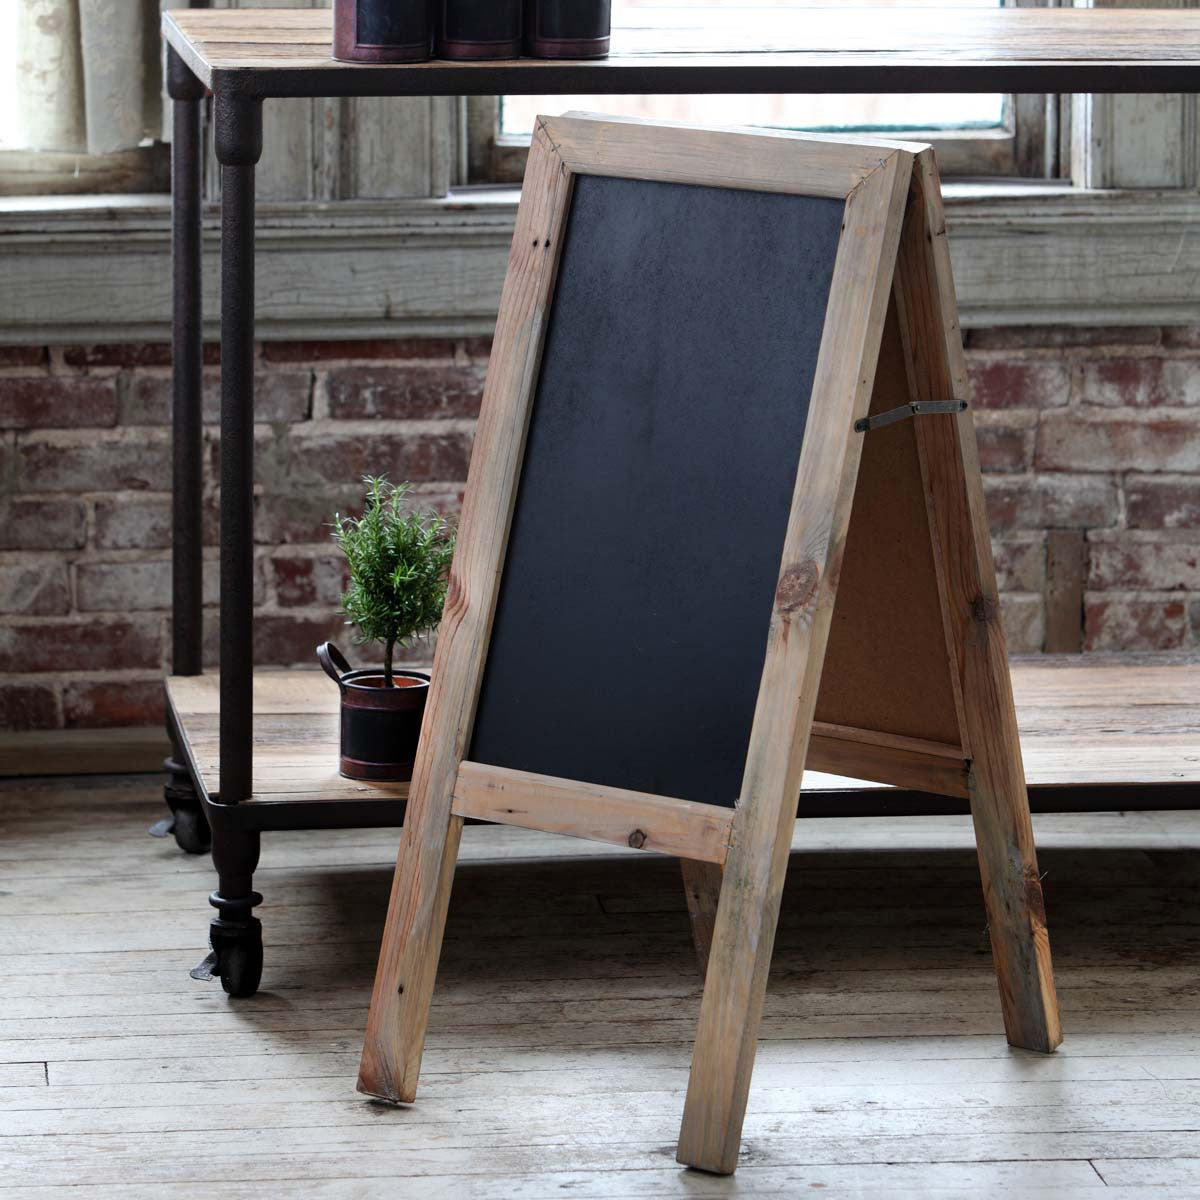 Two-Sided Sidewalk Chalkboard